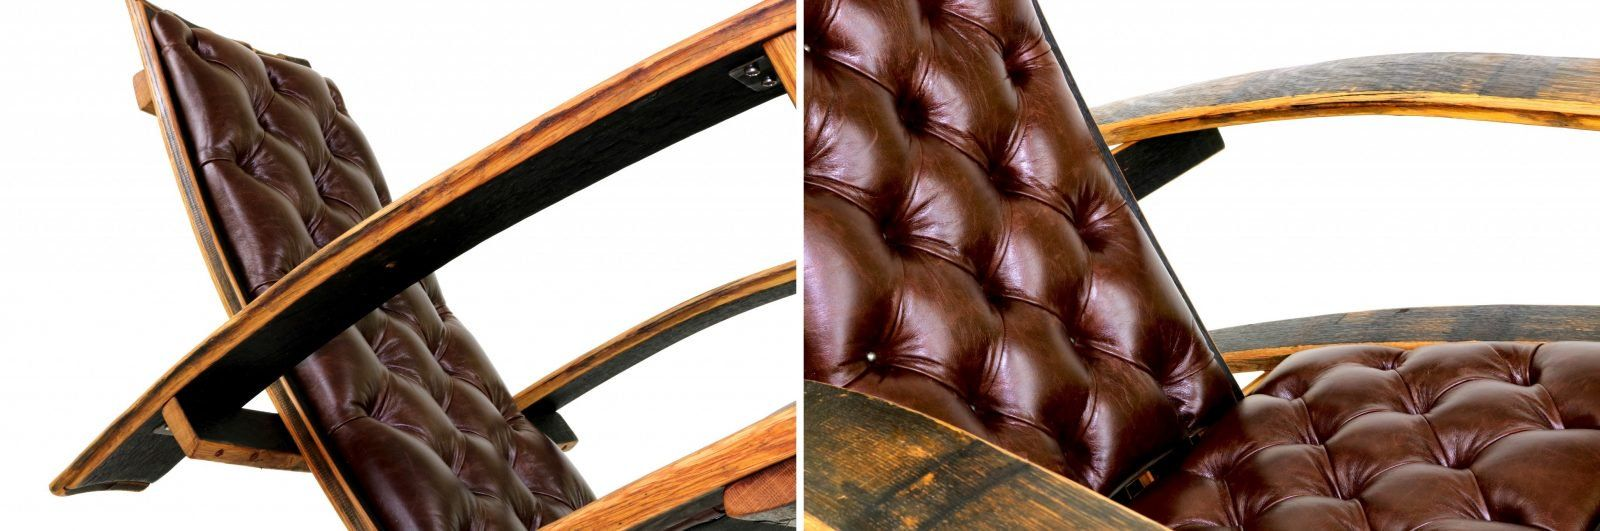 A Rocking Chair Made From Reclaimed Bourbon Barrels The